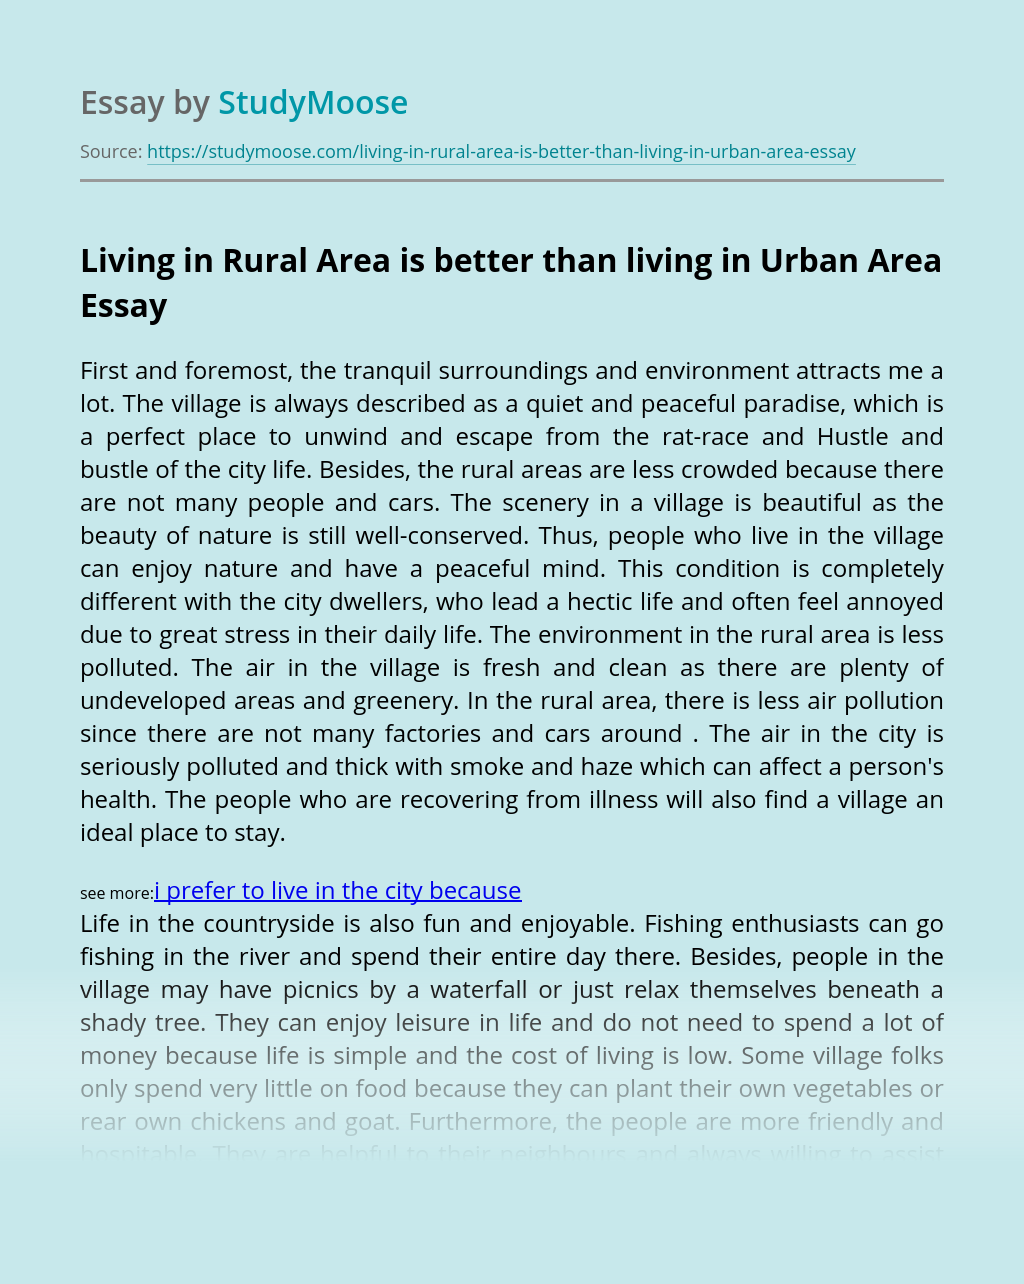 Living in Rural Area is better than living in Urban Area